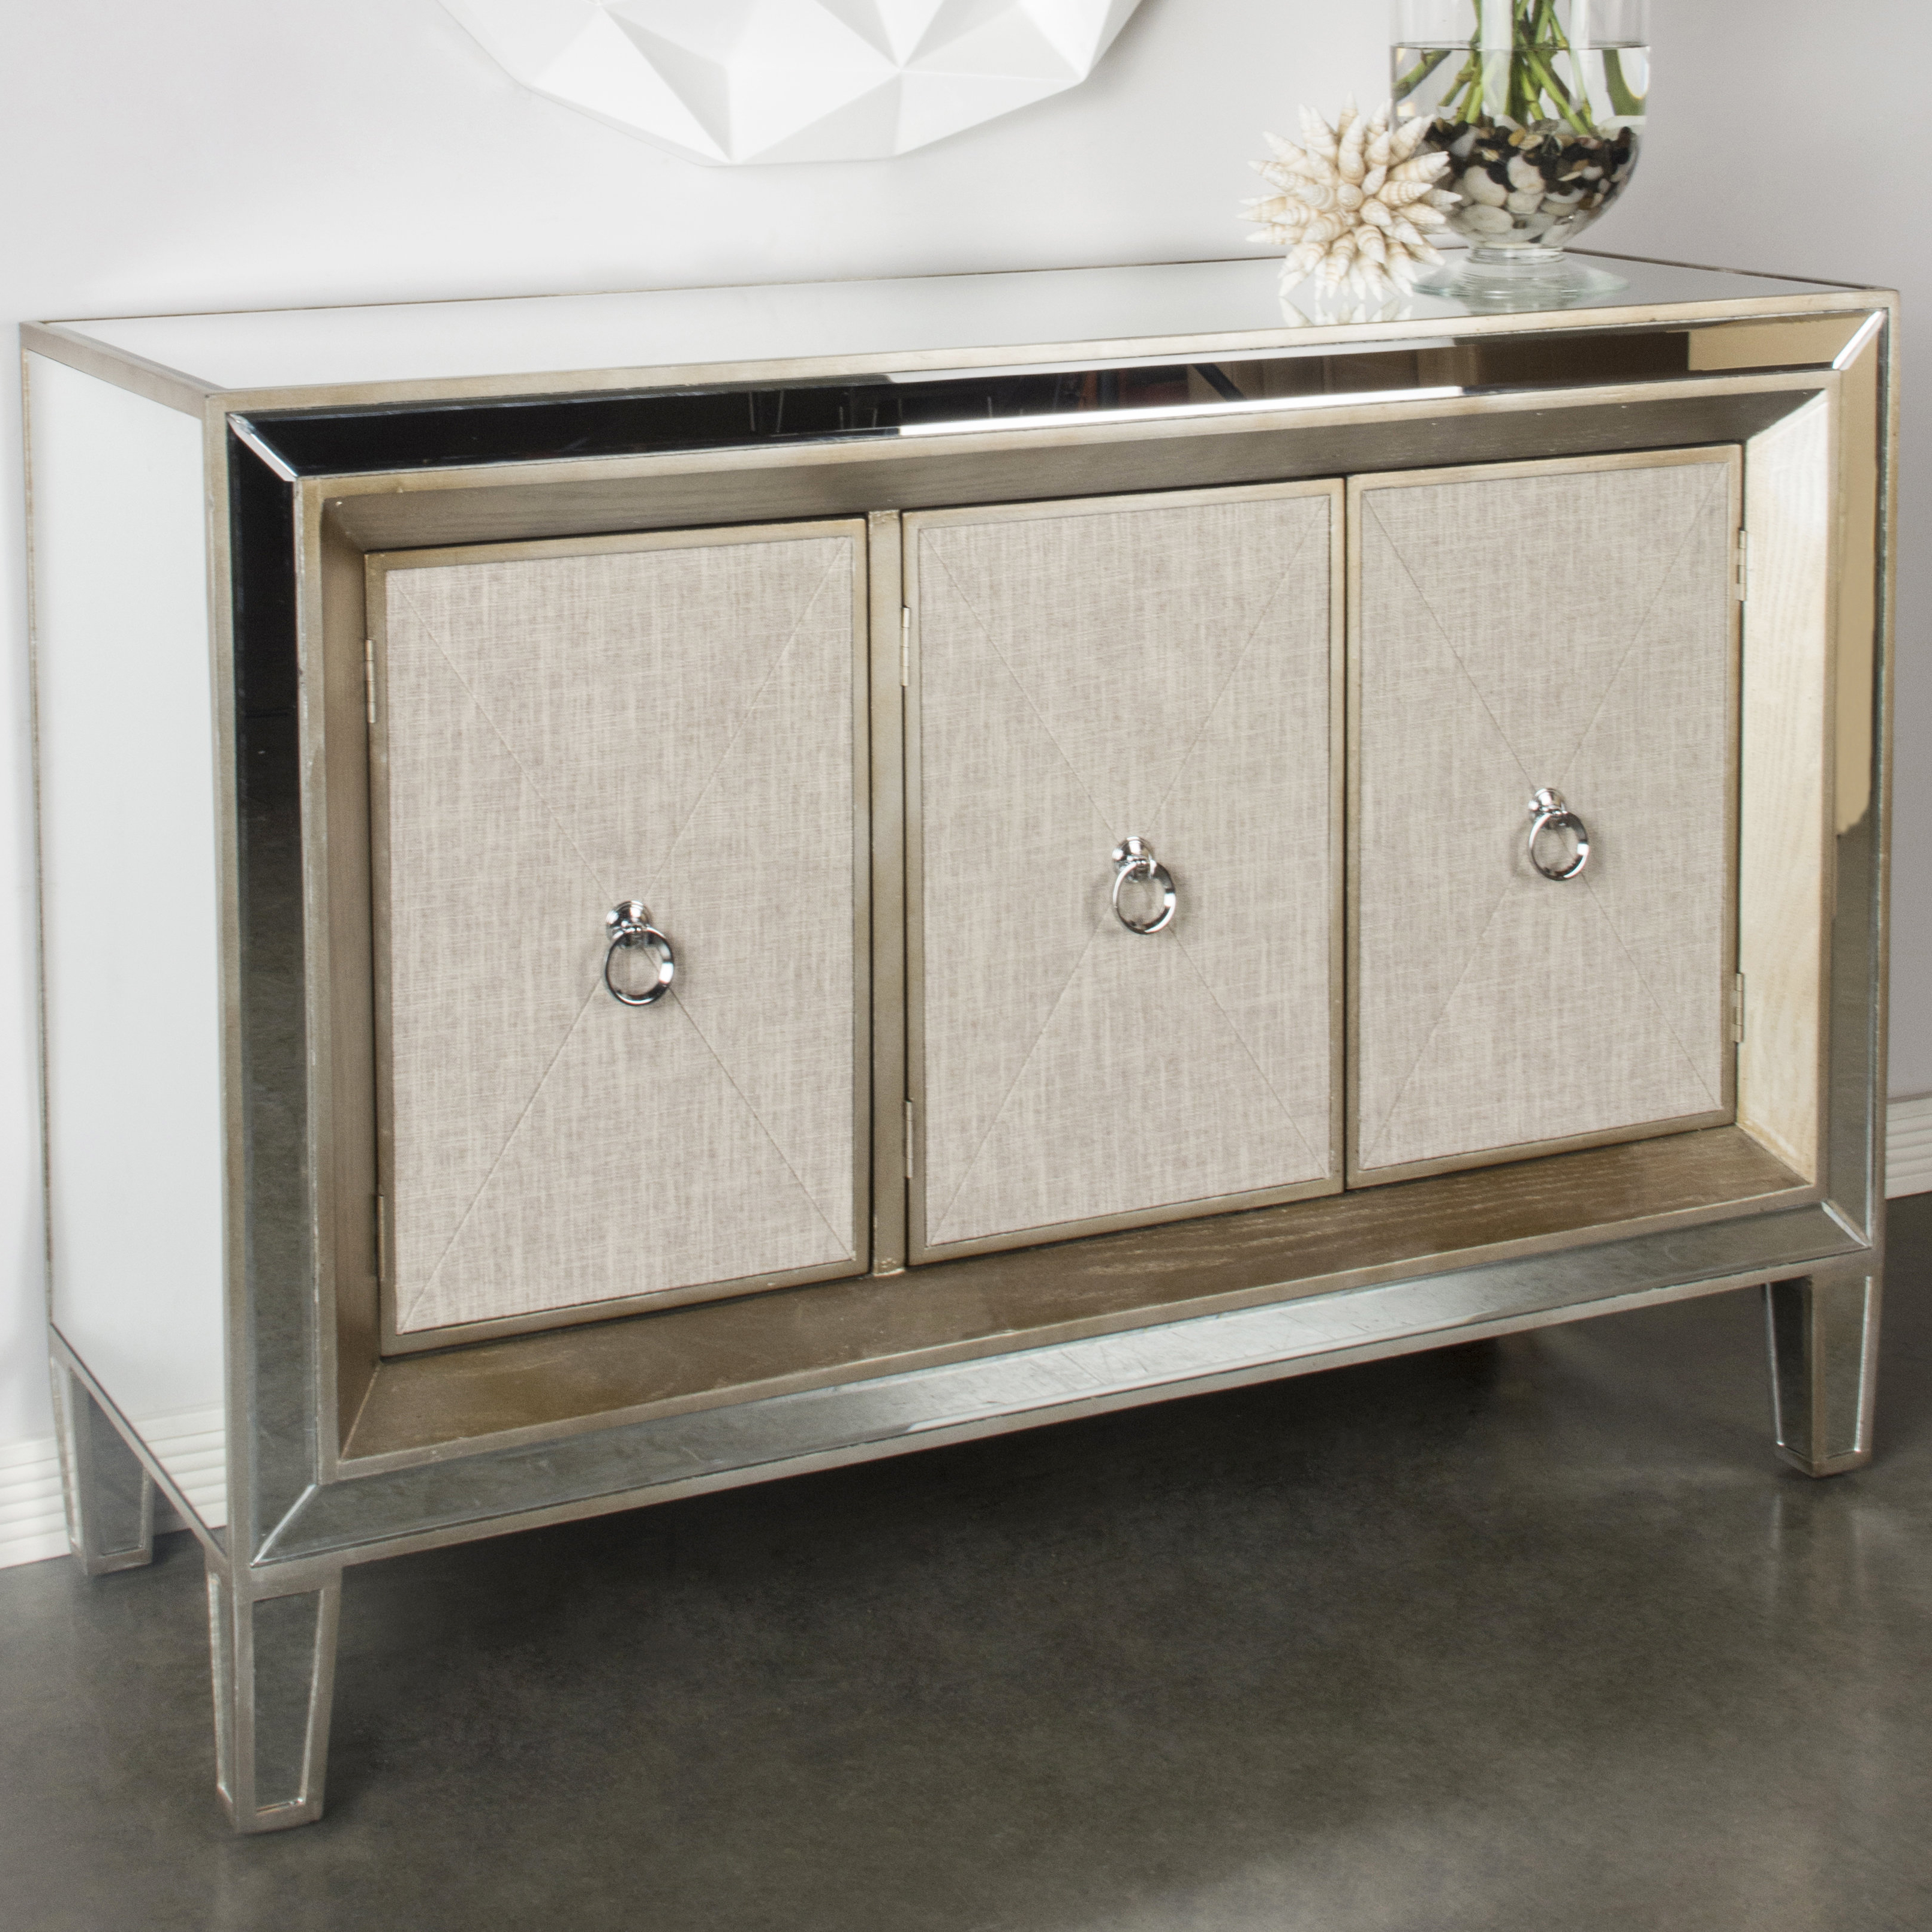 Gold & Silver Sideboards & Buffets You'll Love In 2019 | Wayfair With Regard To Wattisham Sideboards (View 4 of 20)